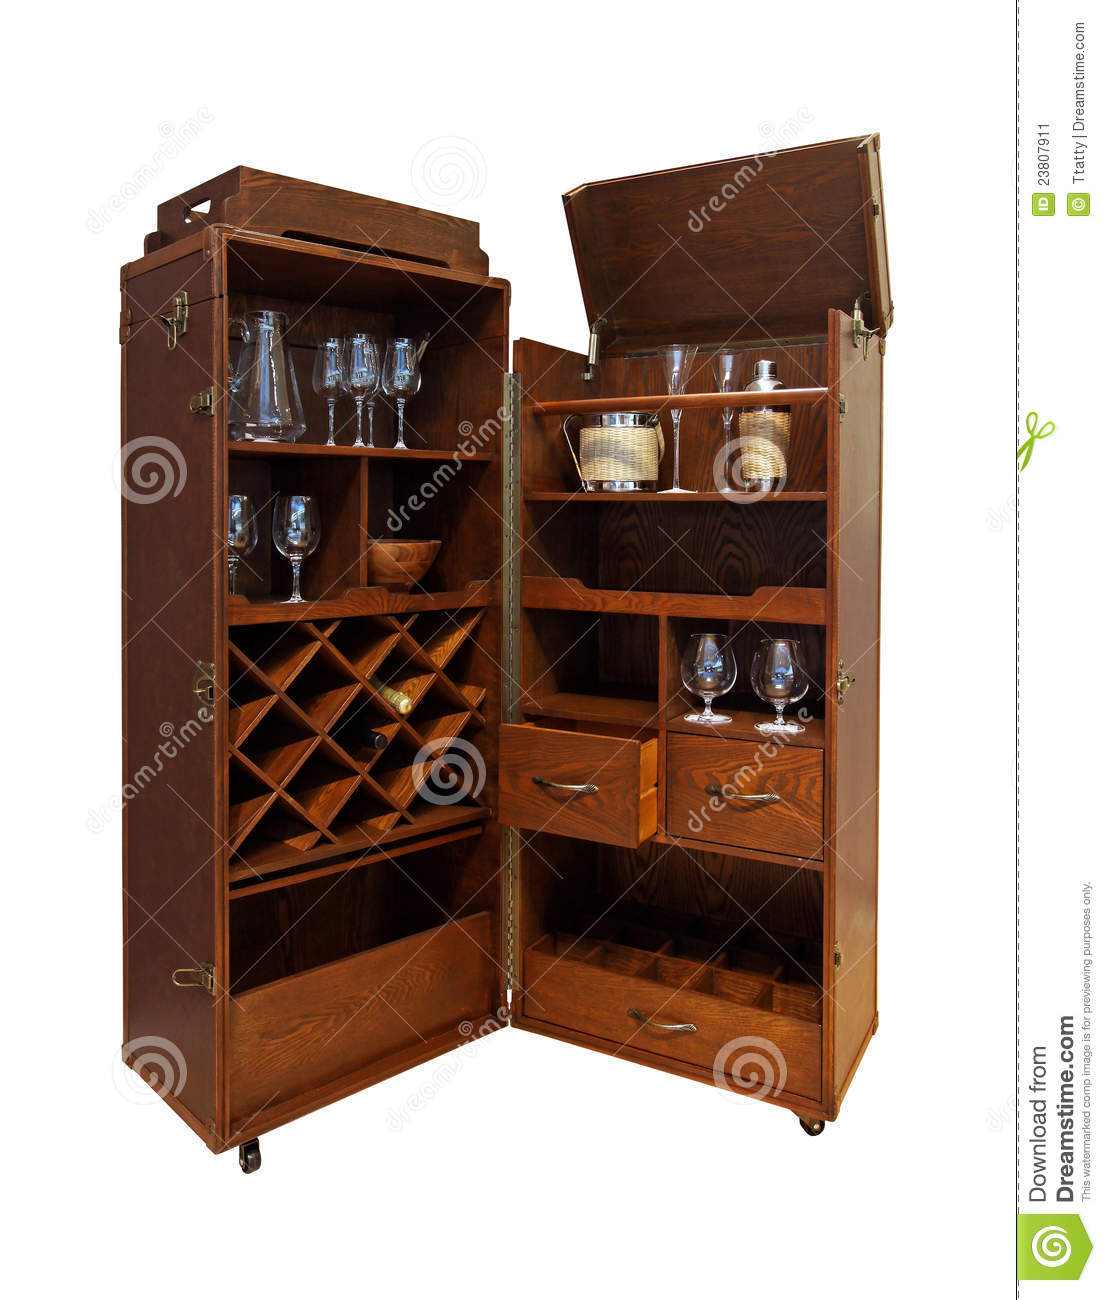 Home Bars For The Casual Drinkers: Drink Bar Home Stock Image